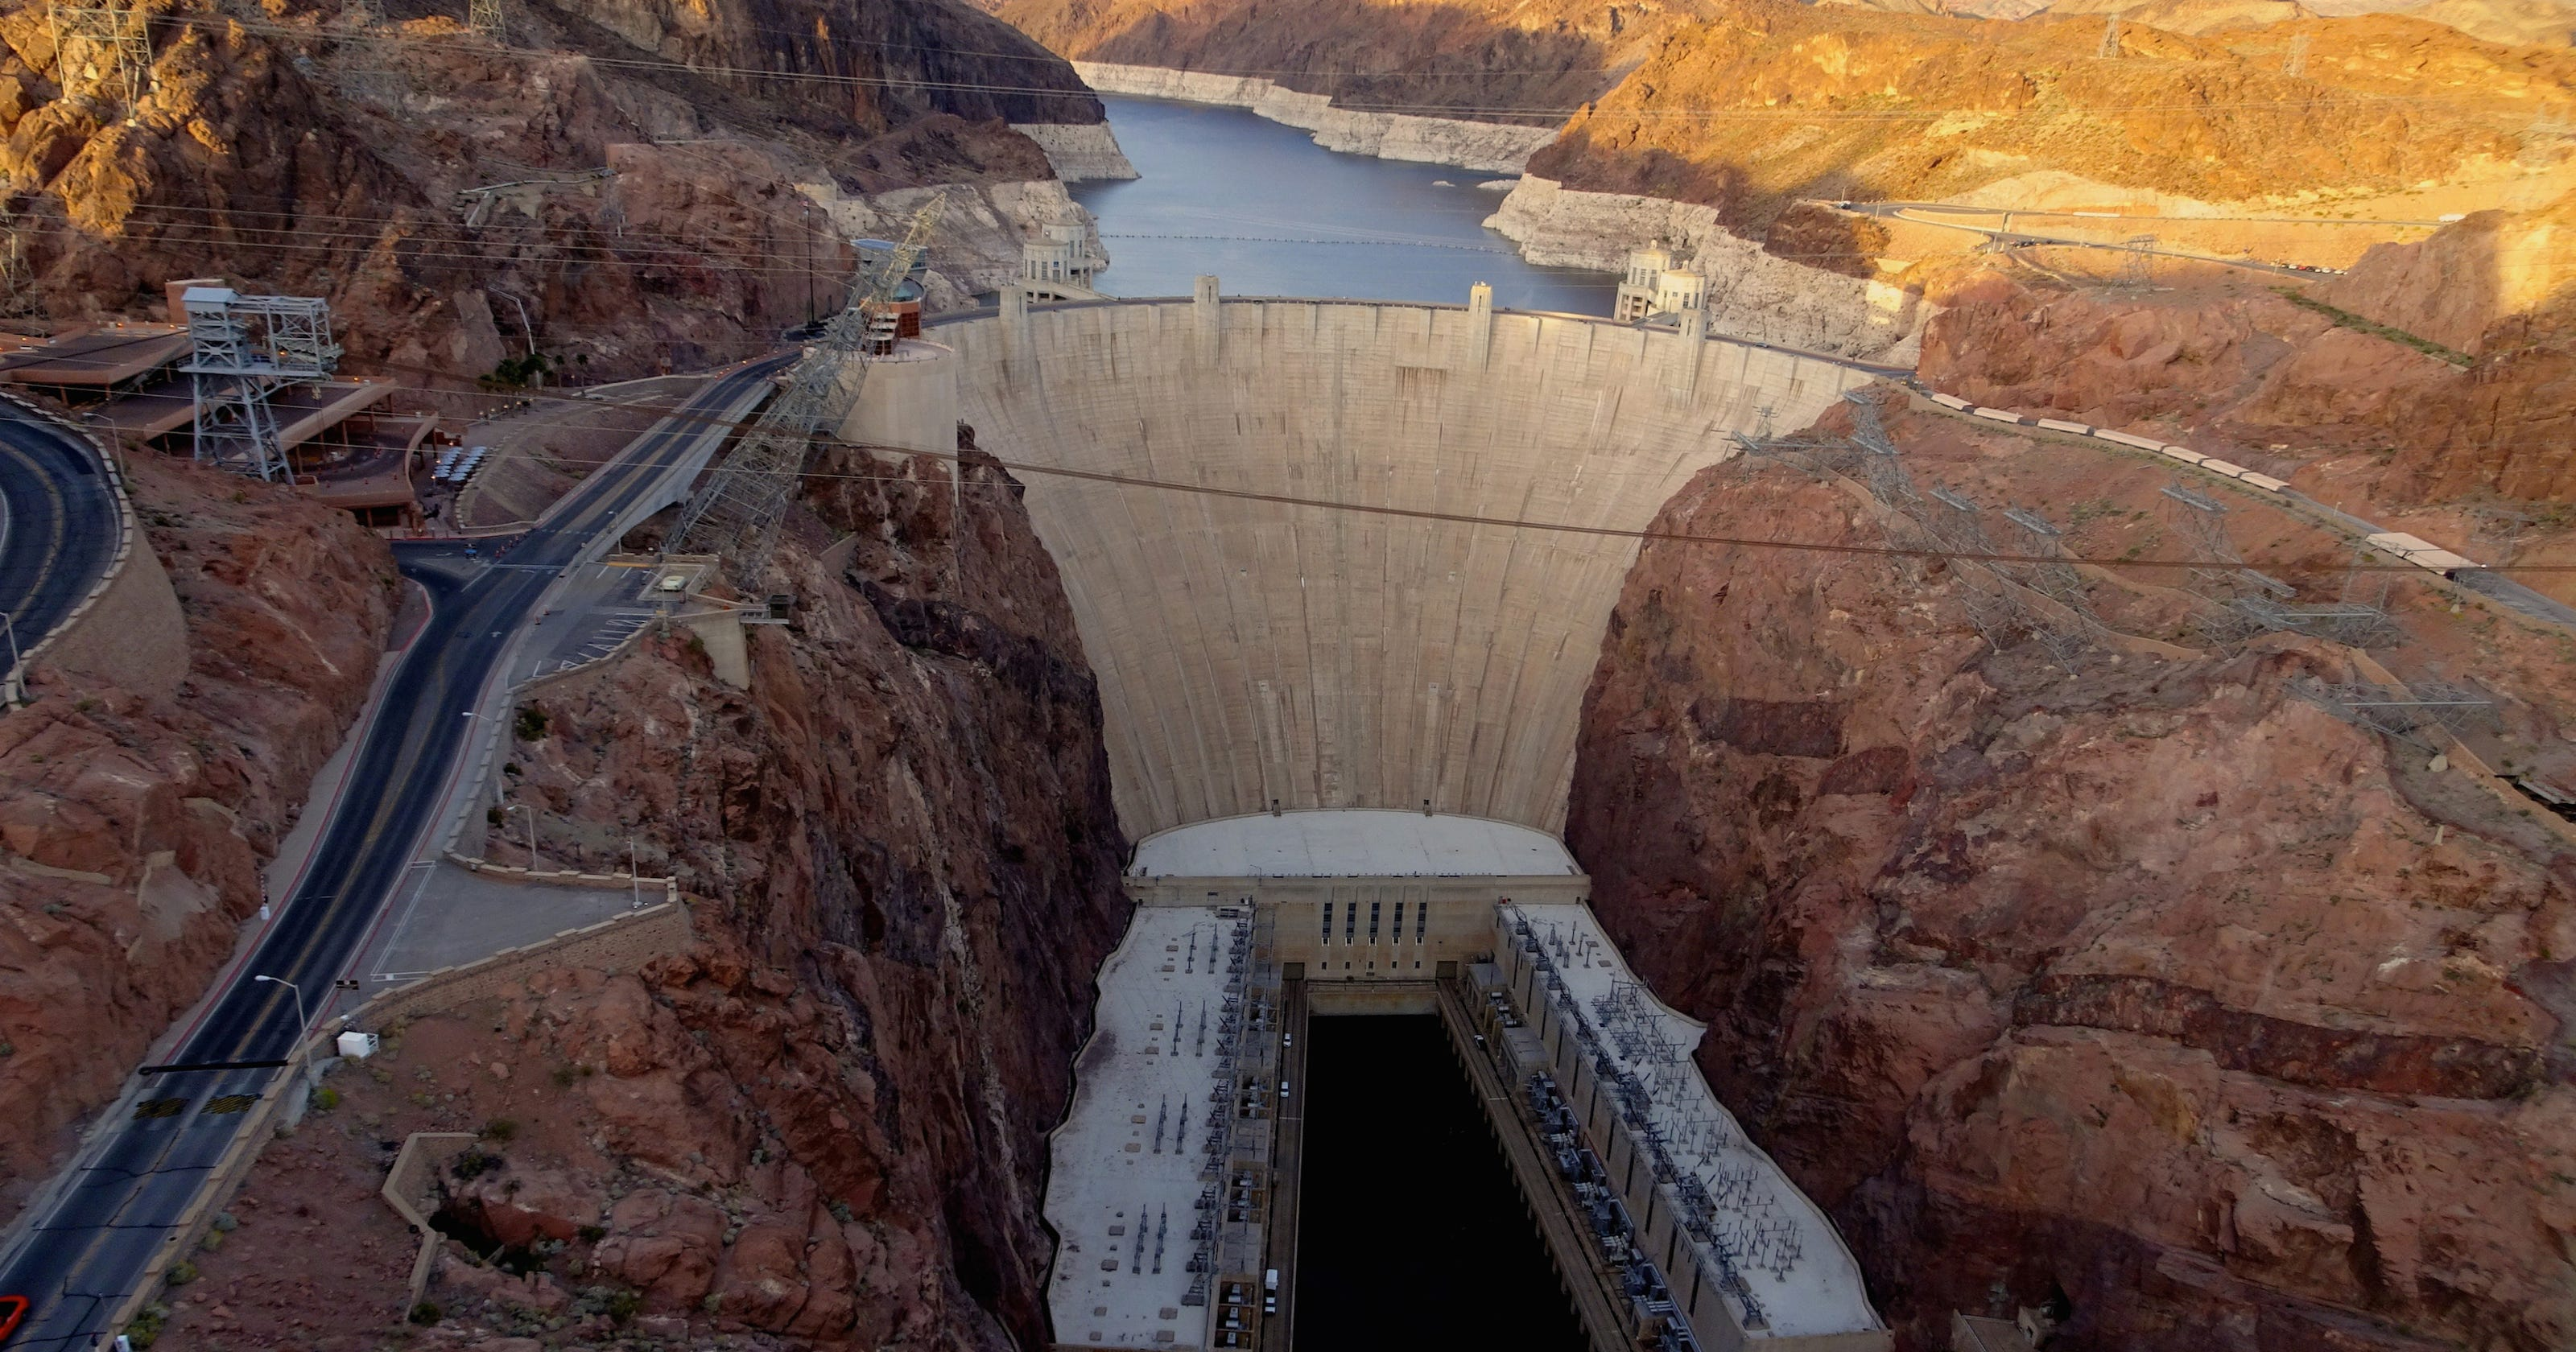 Hoover Dam: Tours, sightseeing and where it is